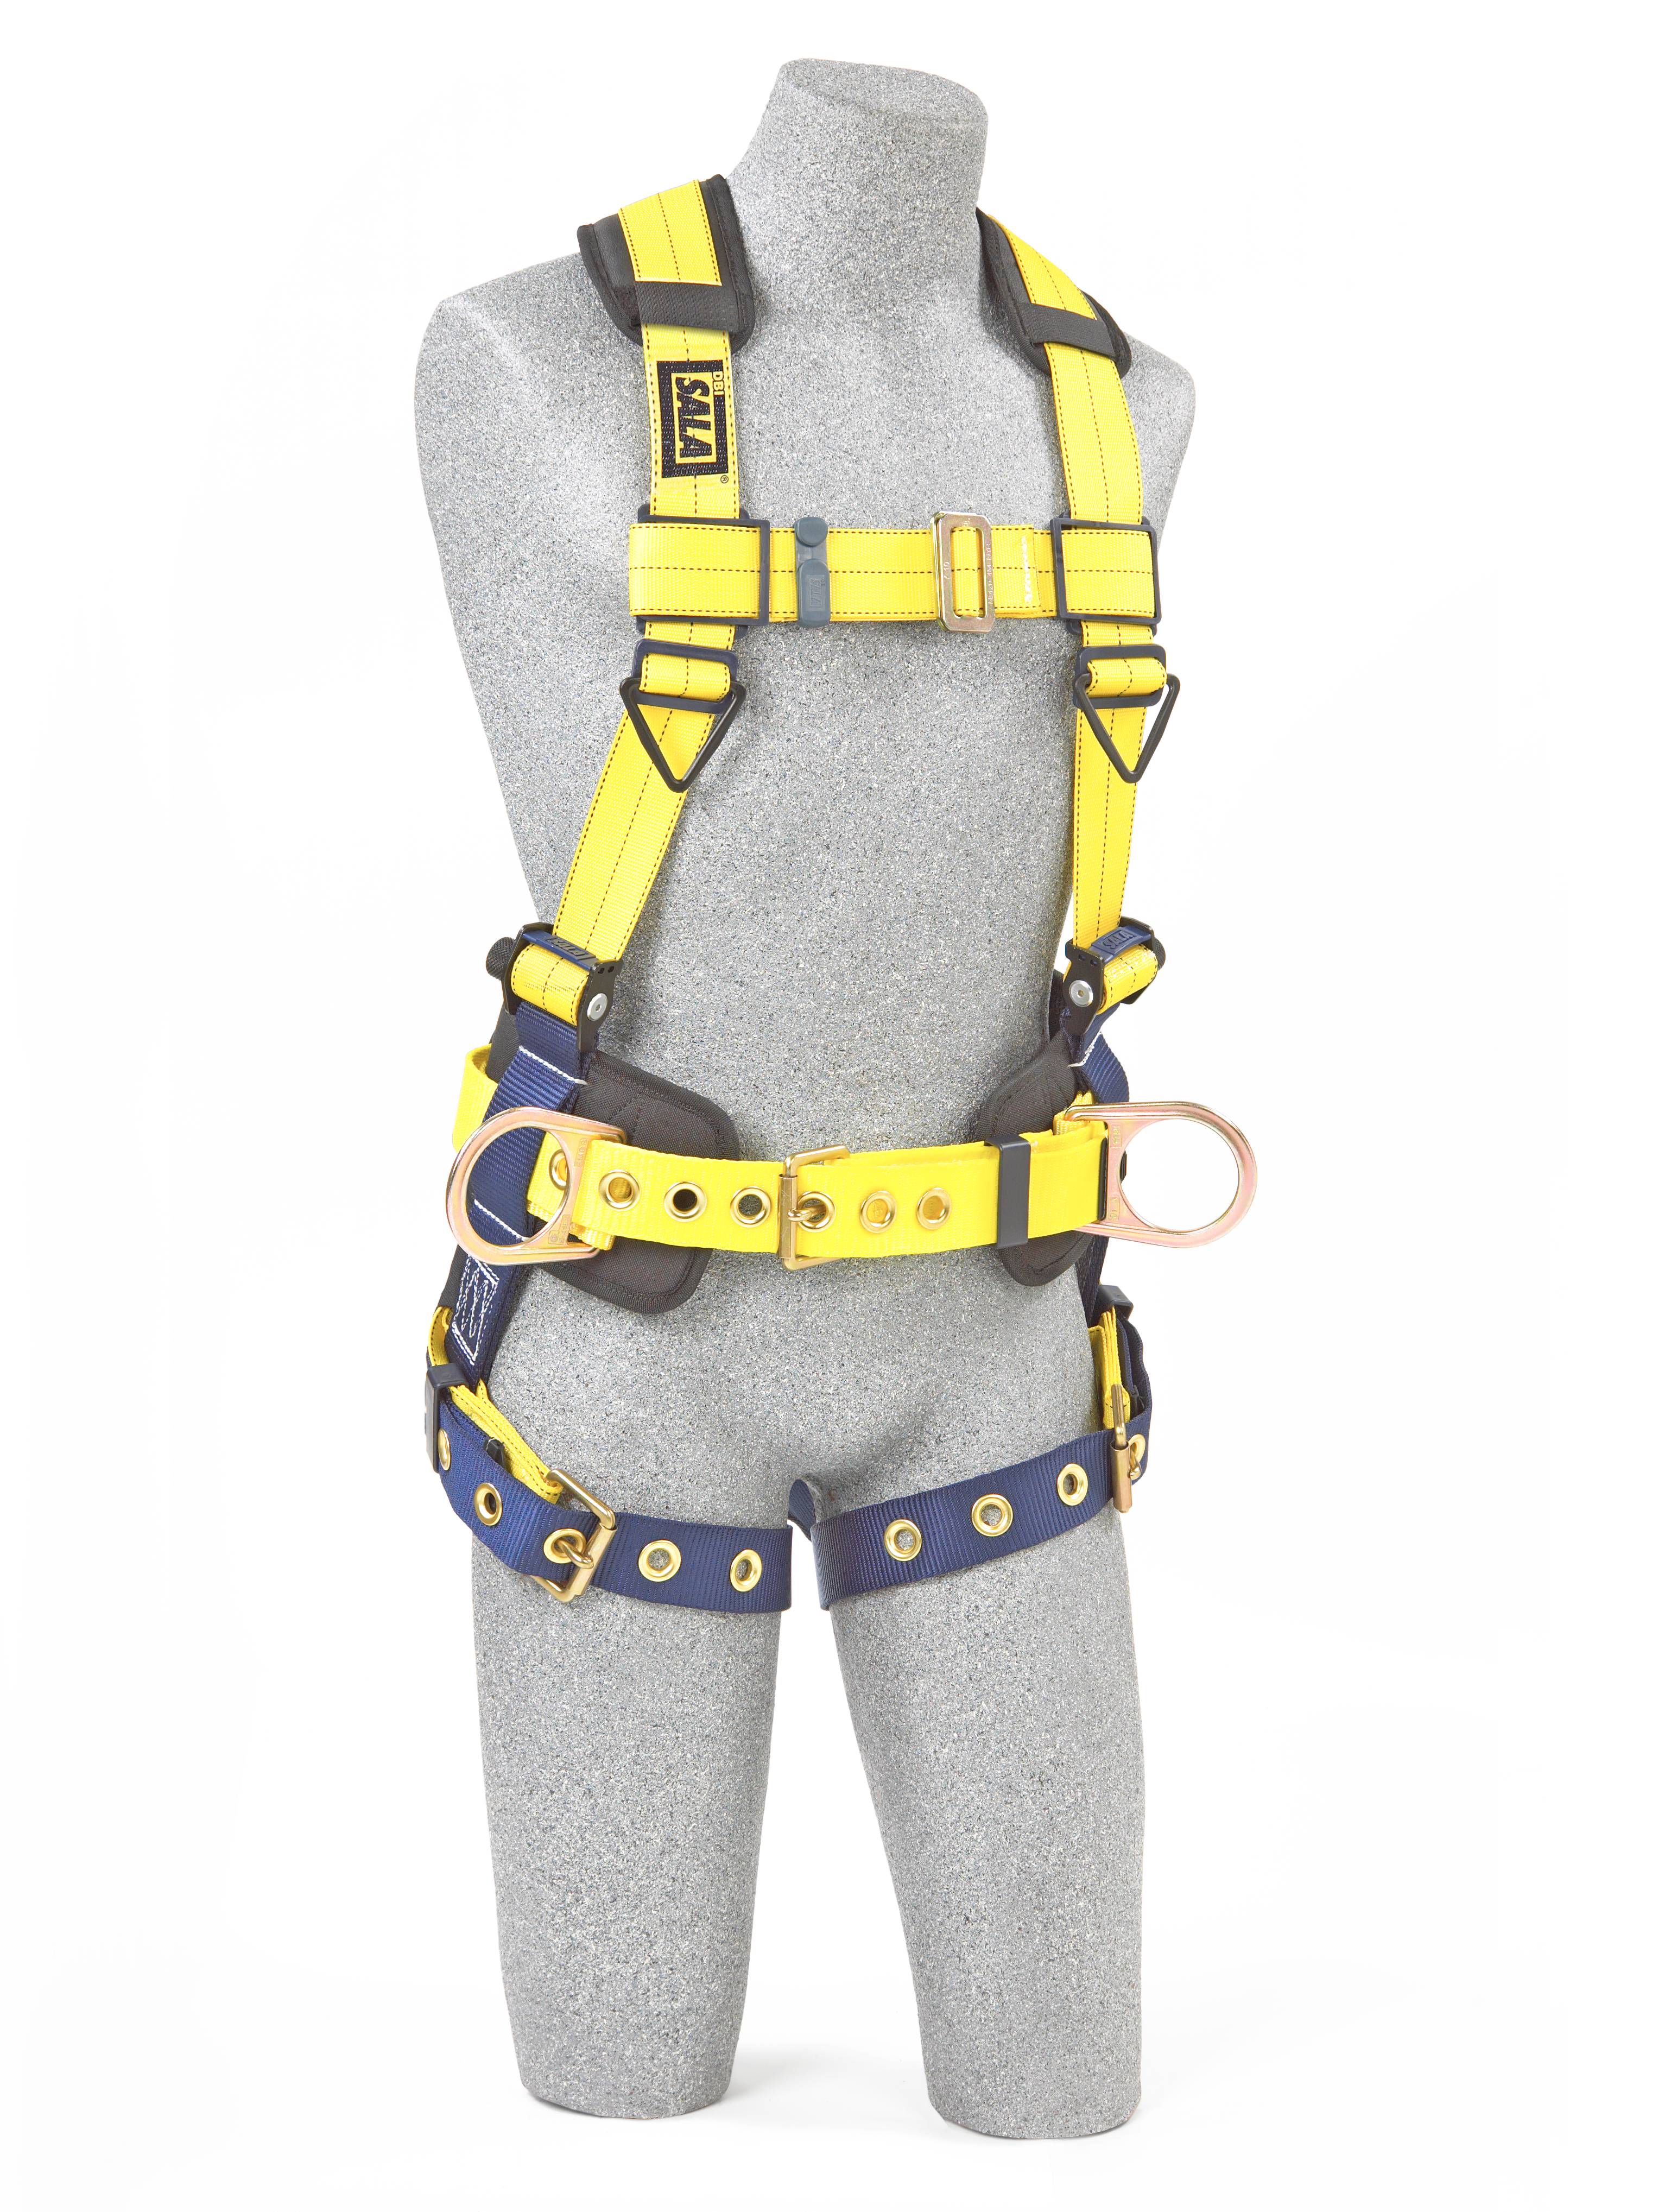 Delta Construction Harness, Pass-Through Chest, Tongue-Buckle Legs, Side D-Rings, Front